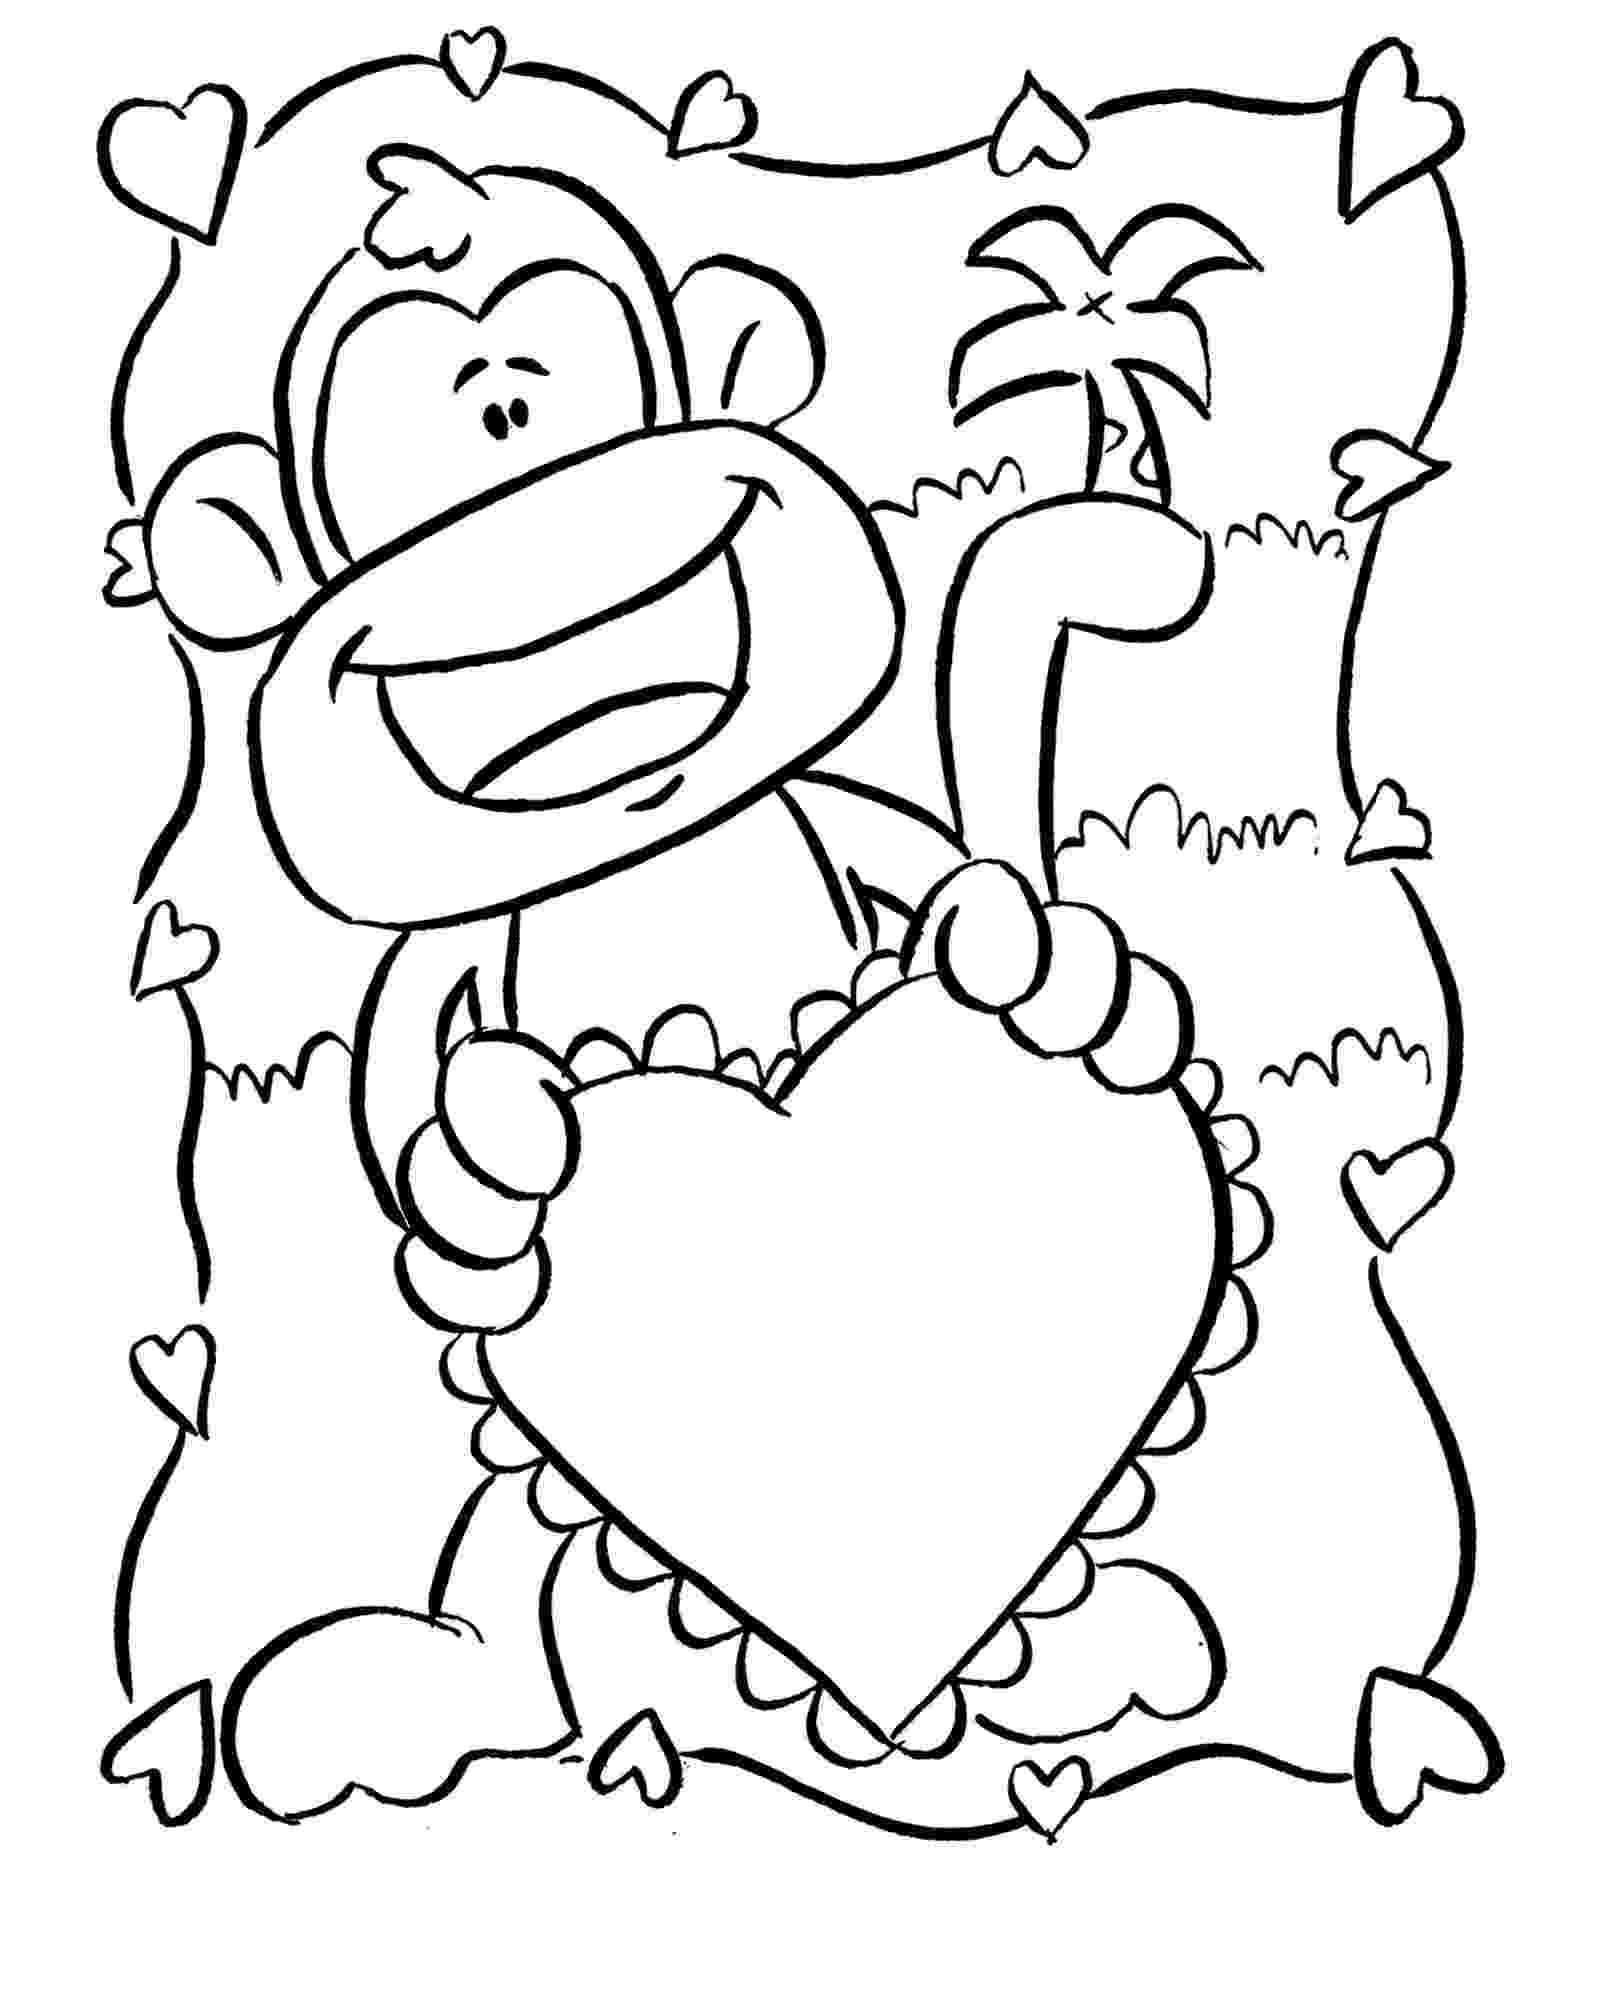 printable coloring pages monkeys colouring monkey clipart best printable monkeys pages coloring